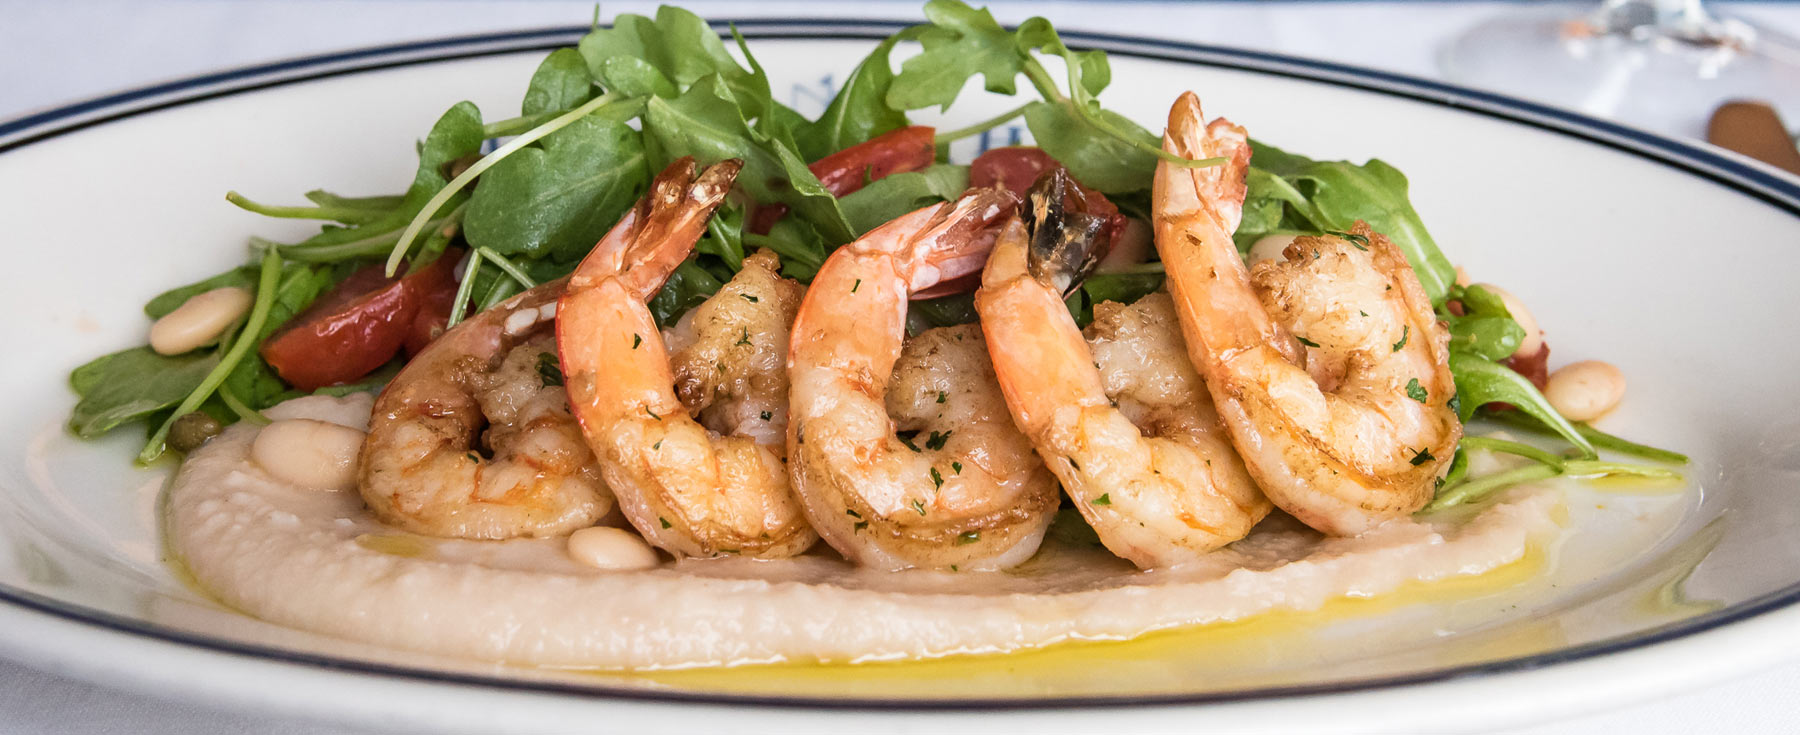 HH-shrimp-with-beans-menu-img.jpg